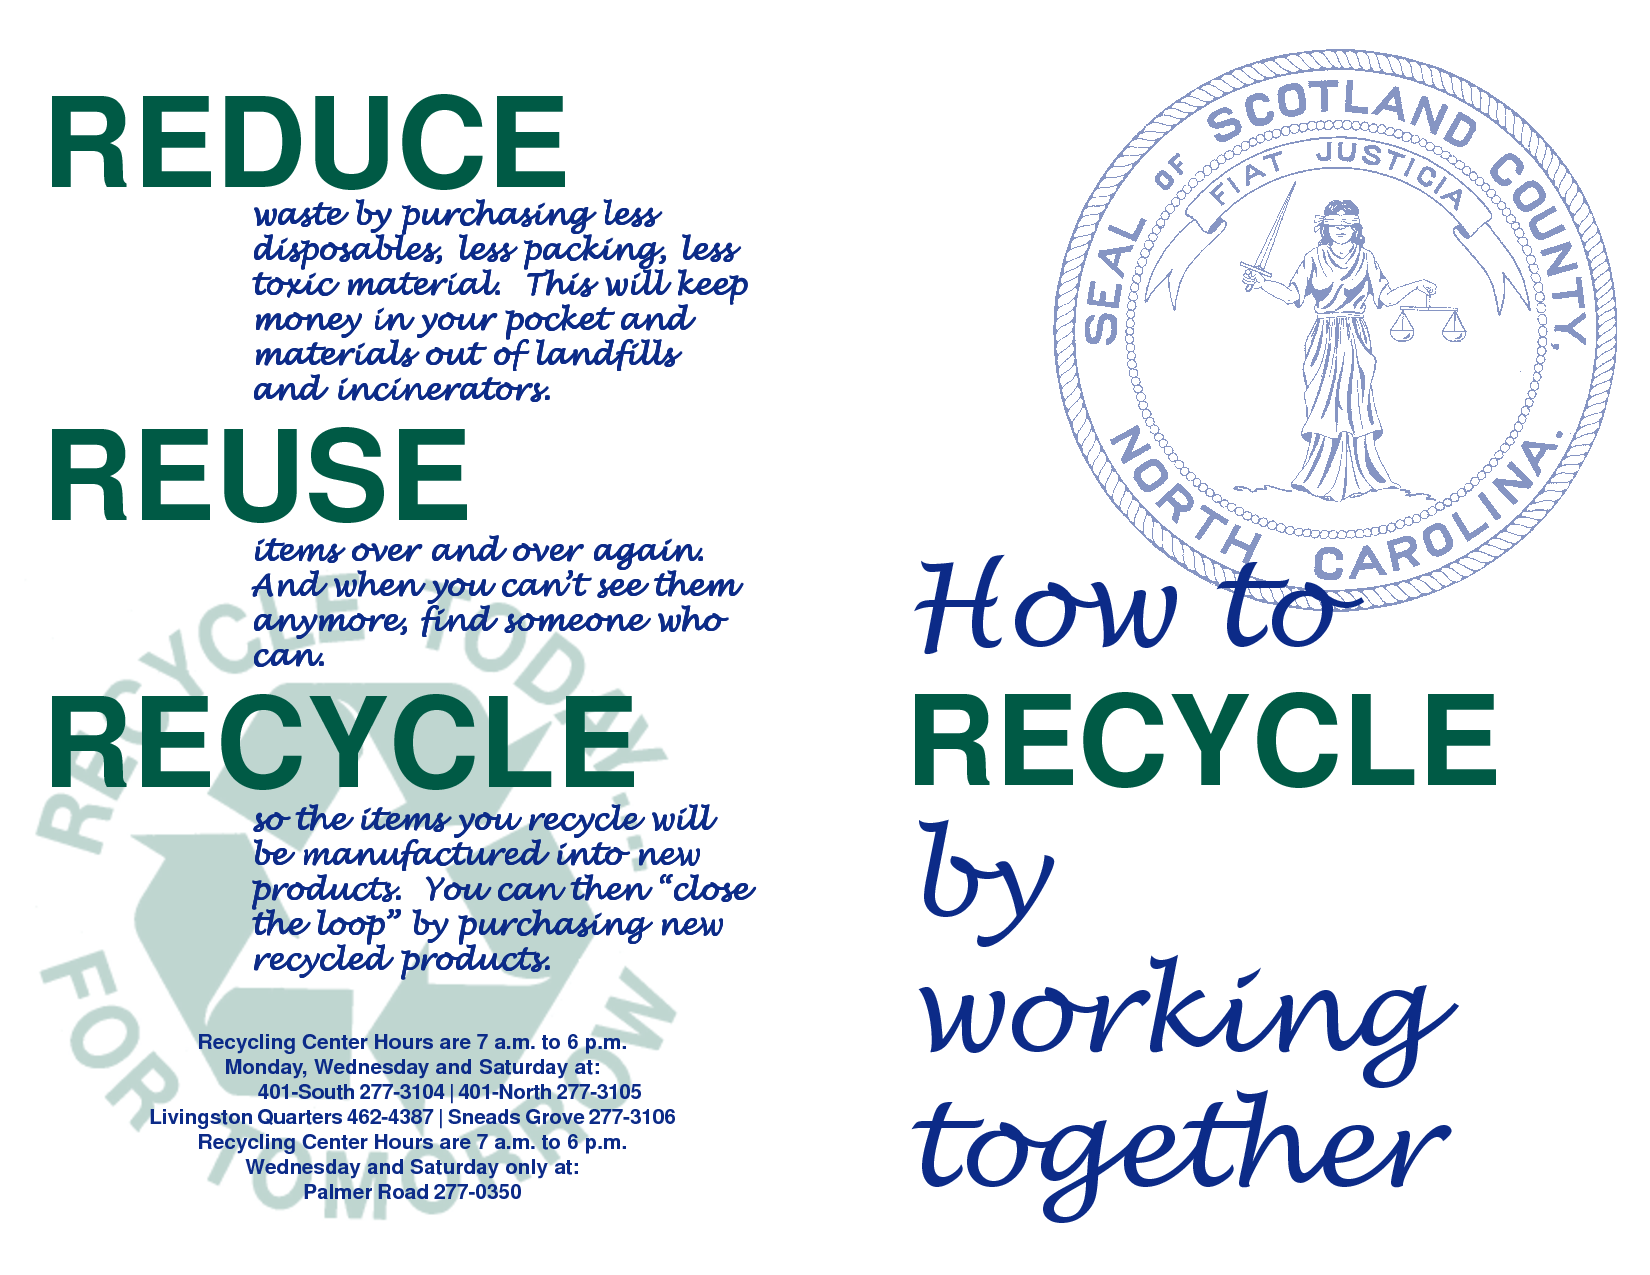 recycling facts essay In this article, we're going to take a closer dive into the advantages and disadvantages of recycling let's get started recycling is considered one of the best things we can do as individual citizens to decrease pollution on our planet this is also due to the fact that recycling hasn't yet become the norm.